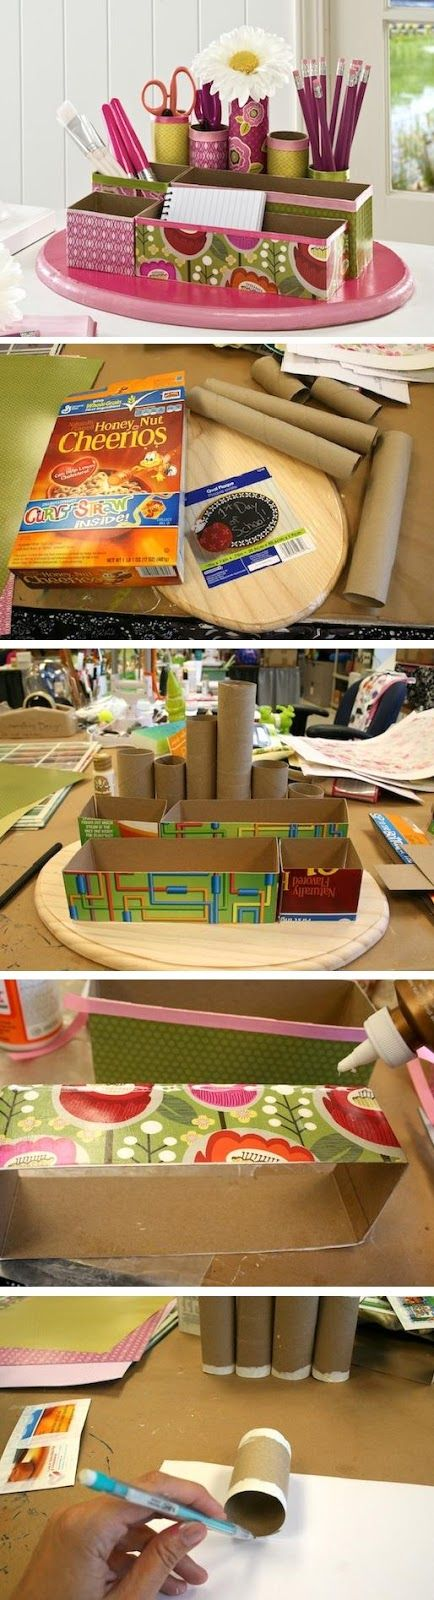 Recycled craft: DIY desk organizer.